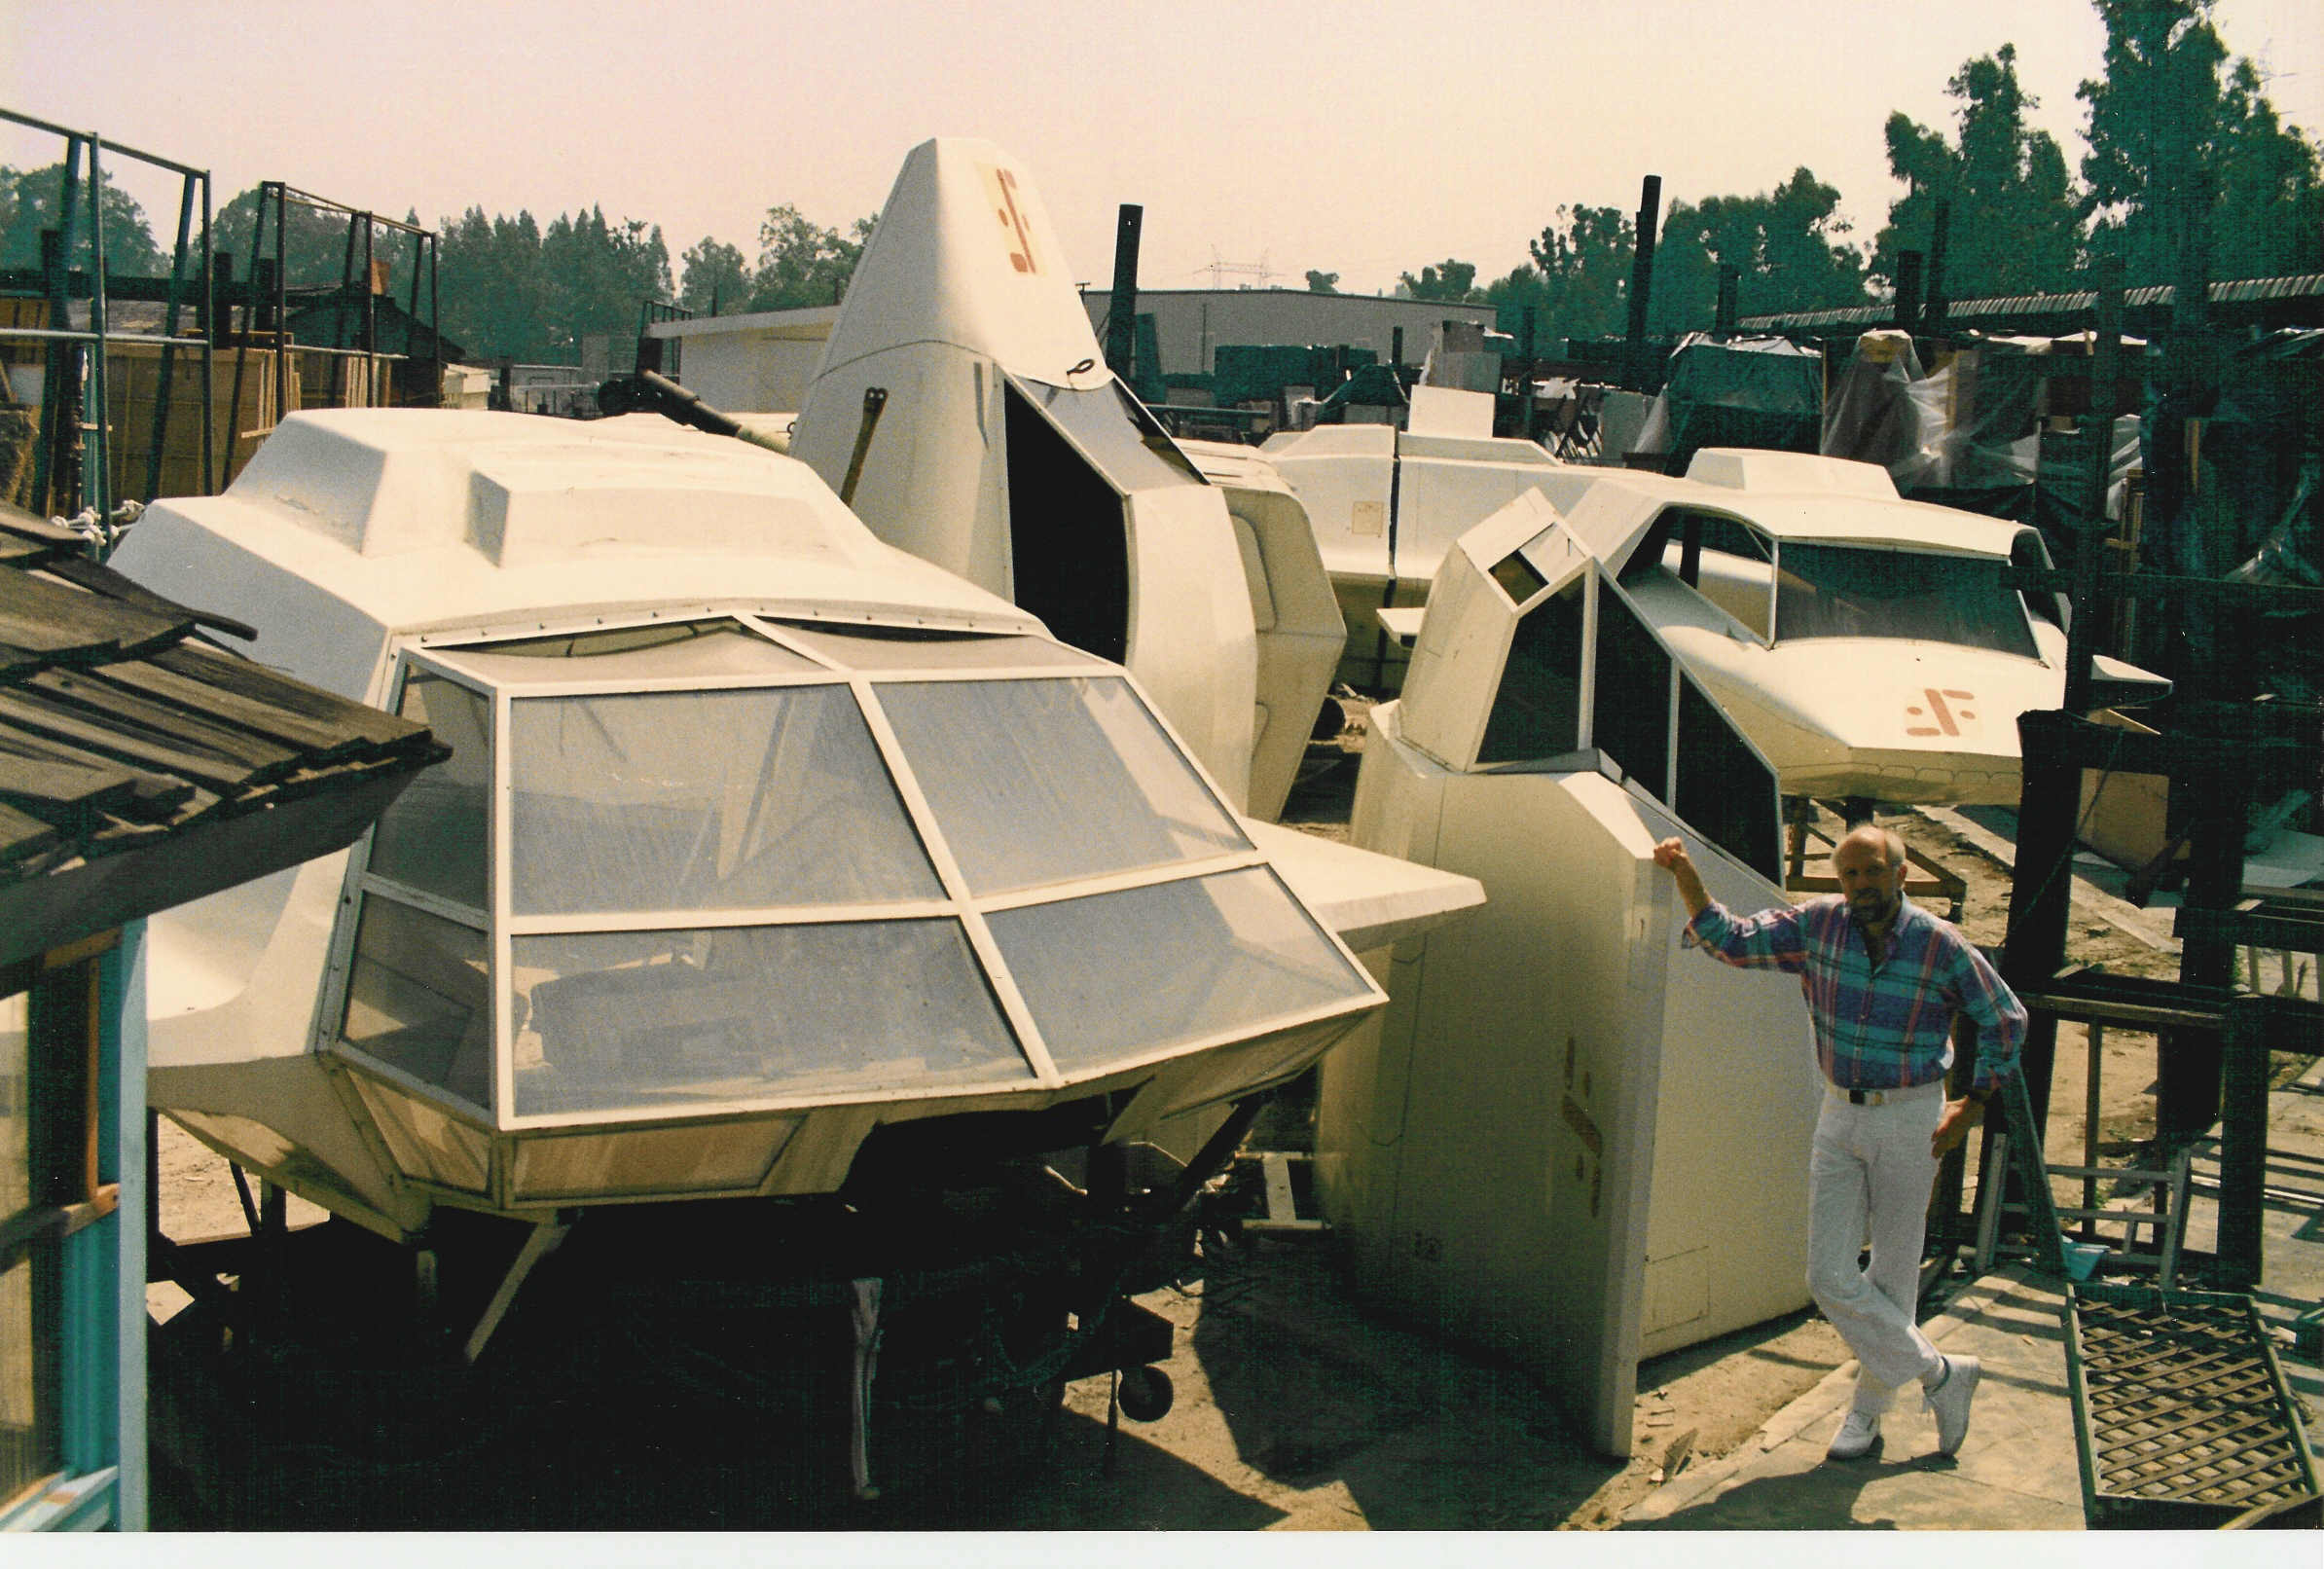 Used Spacecraft Lot, taken on Warners back lot while Kenny was dubbing Short Circuit 2 in 1988.